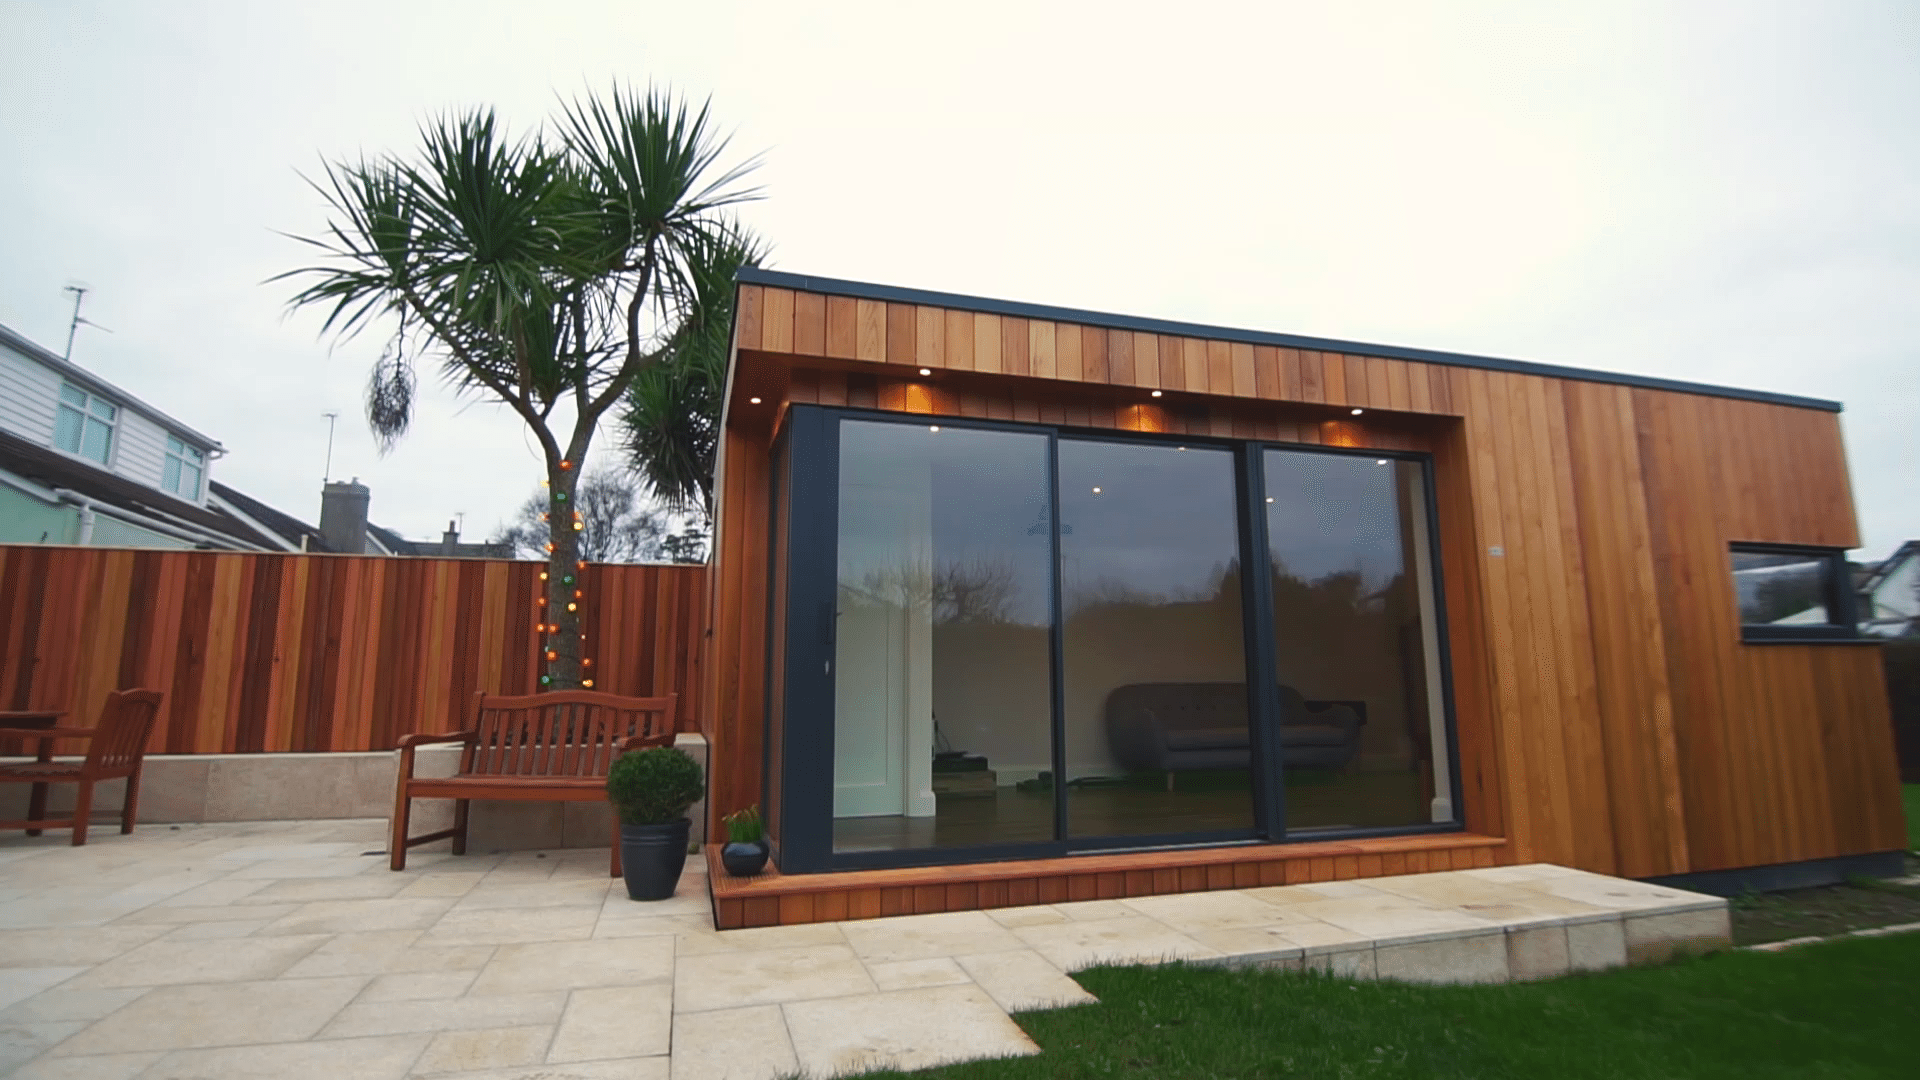 Garden Rooms Garden rooms architecturally designed garden rooms home offices slide background sisterspd